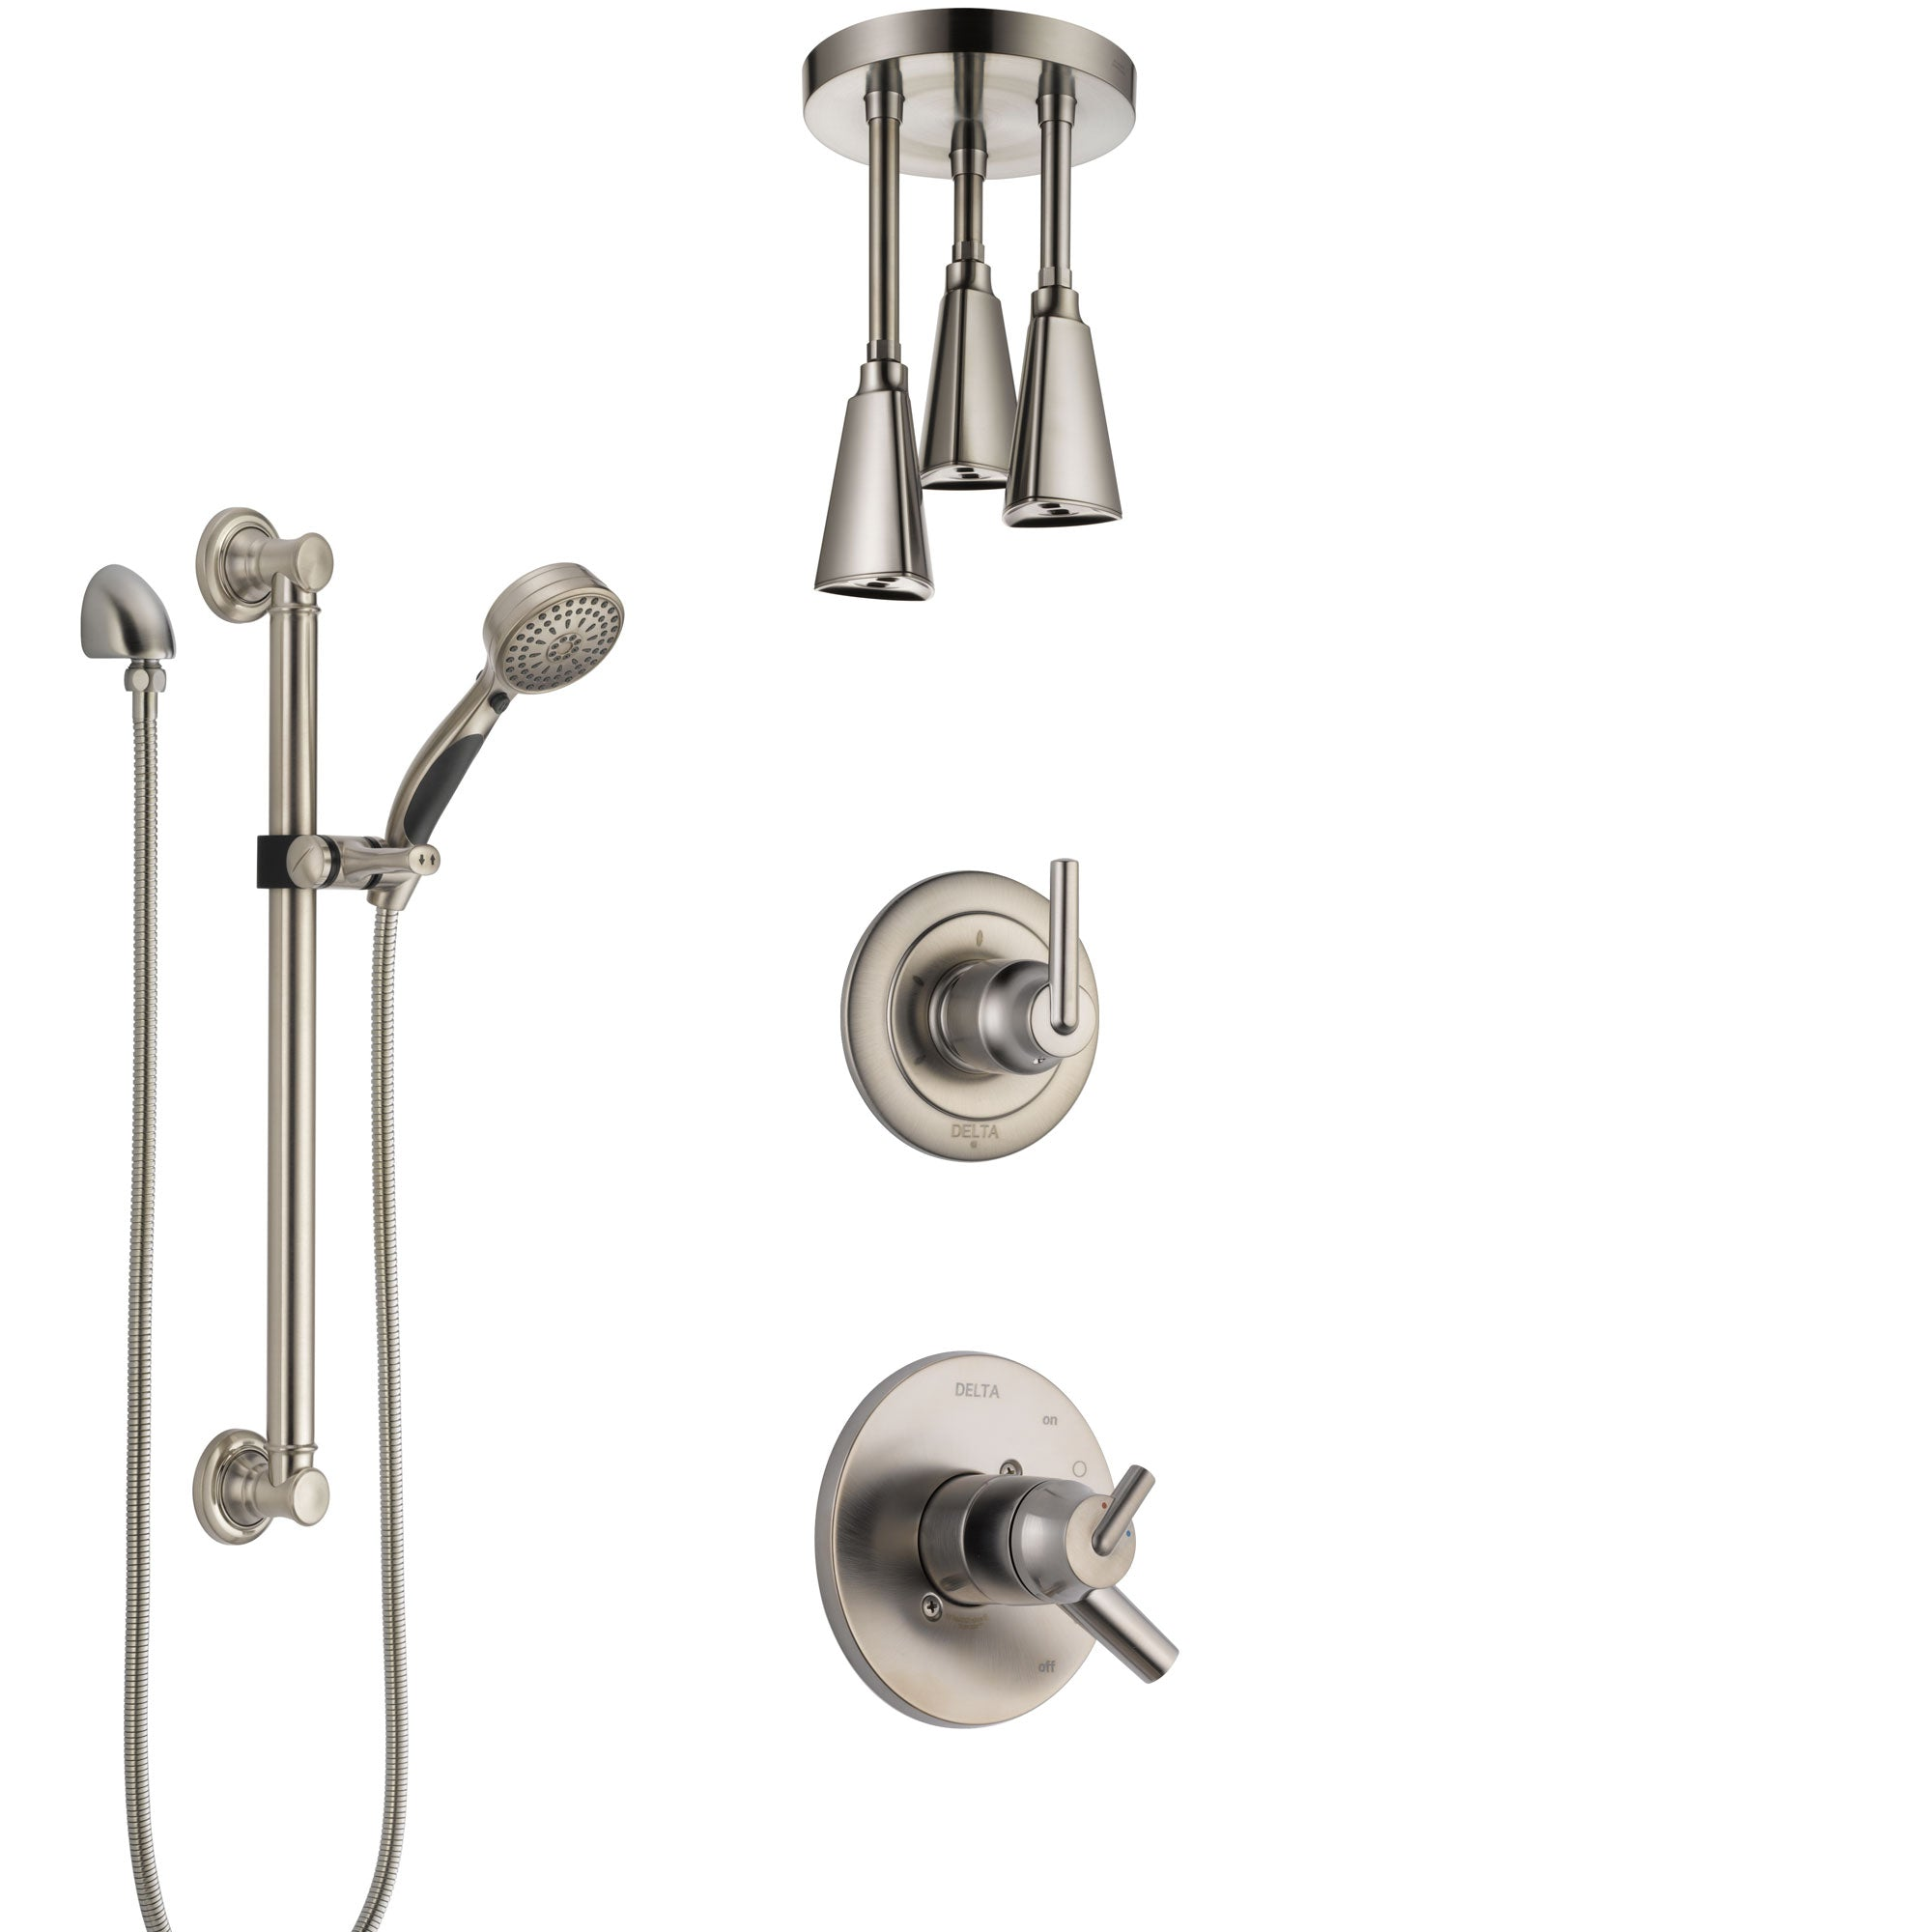 Delta Trinsic Dual Control Handle Stainless Steel Finish Shower System, Diverter, Ceiling Mount Showerhead, and Hand Shower with Grab Bar SS1759SS6